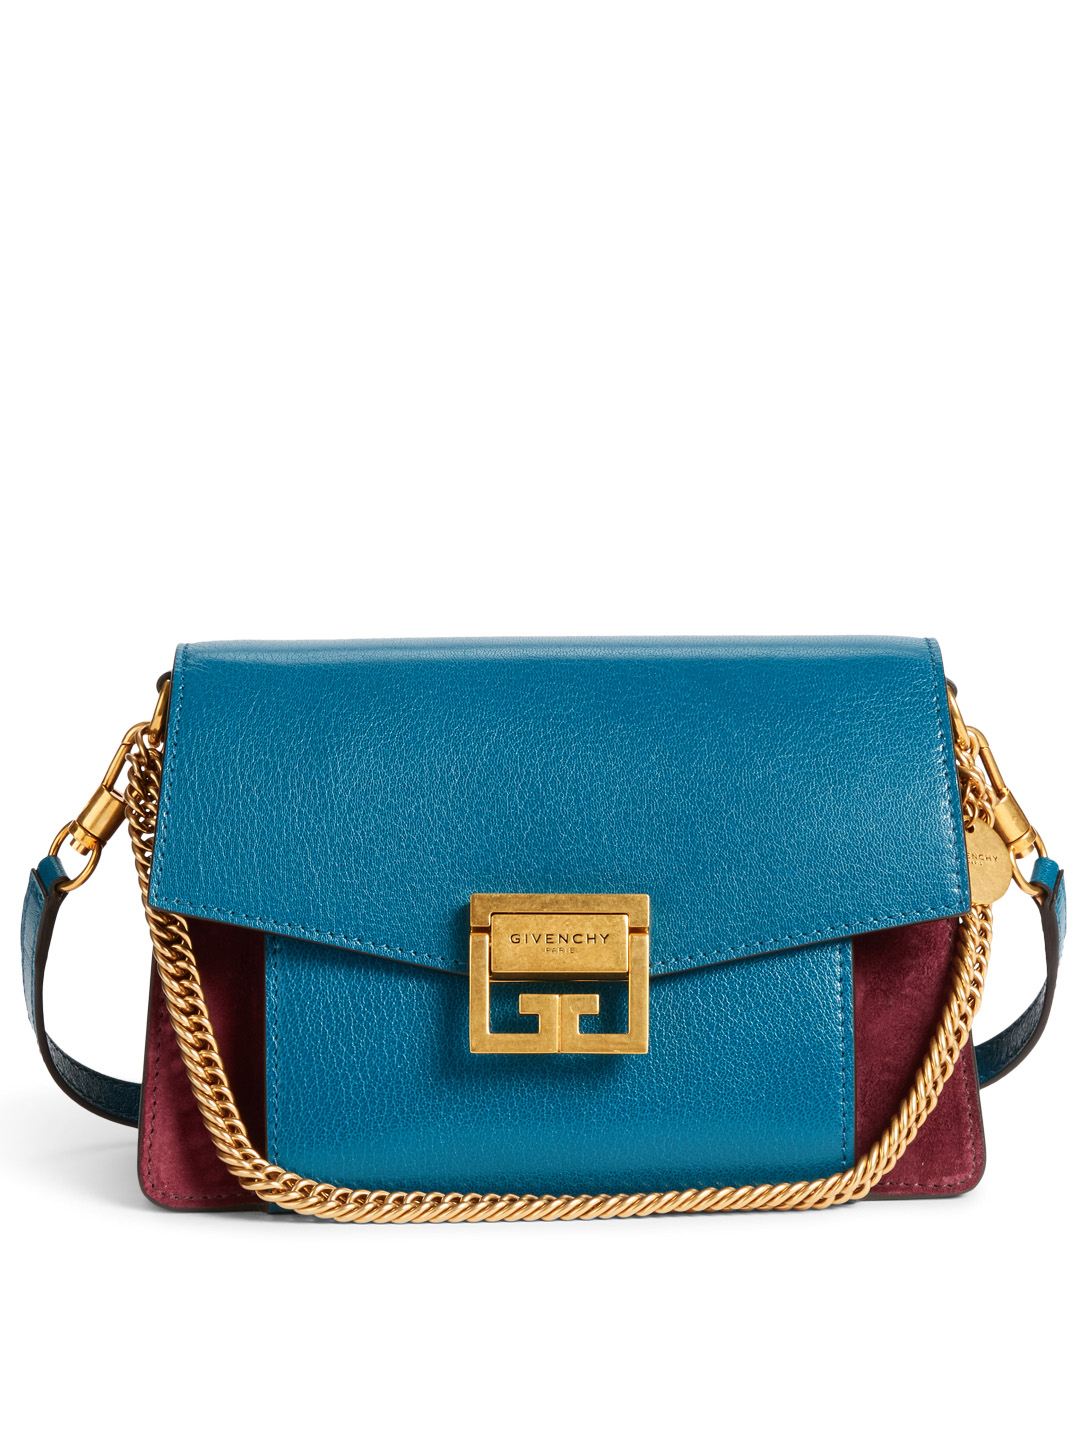 GIVENCHY Small GV3 Leather And Suede Bag Women's Multi